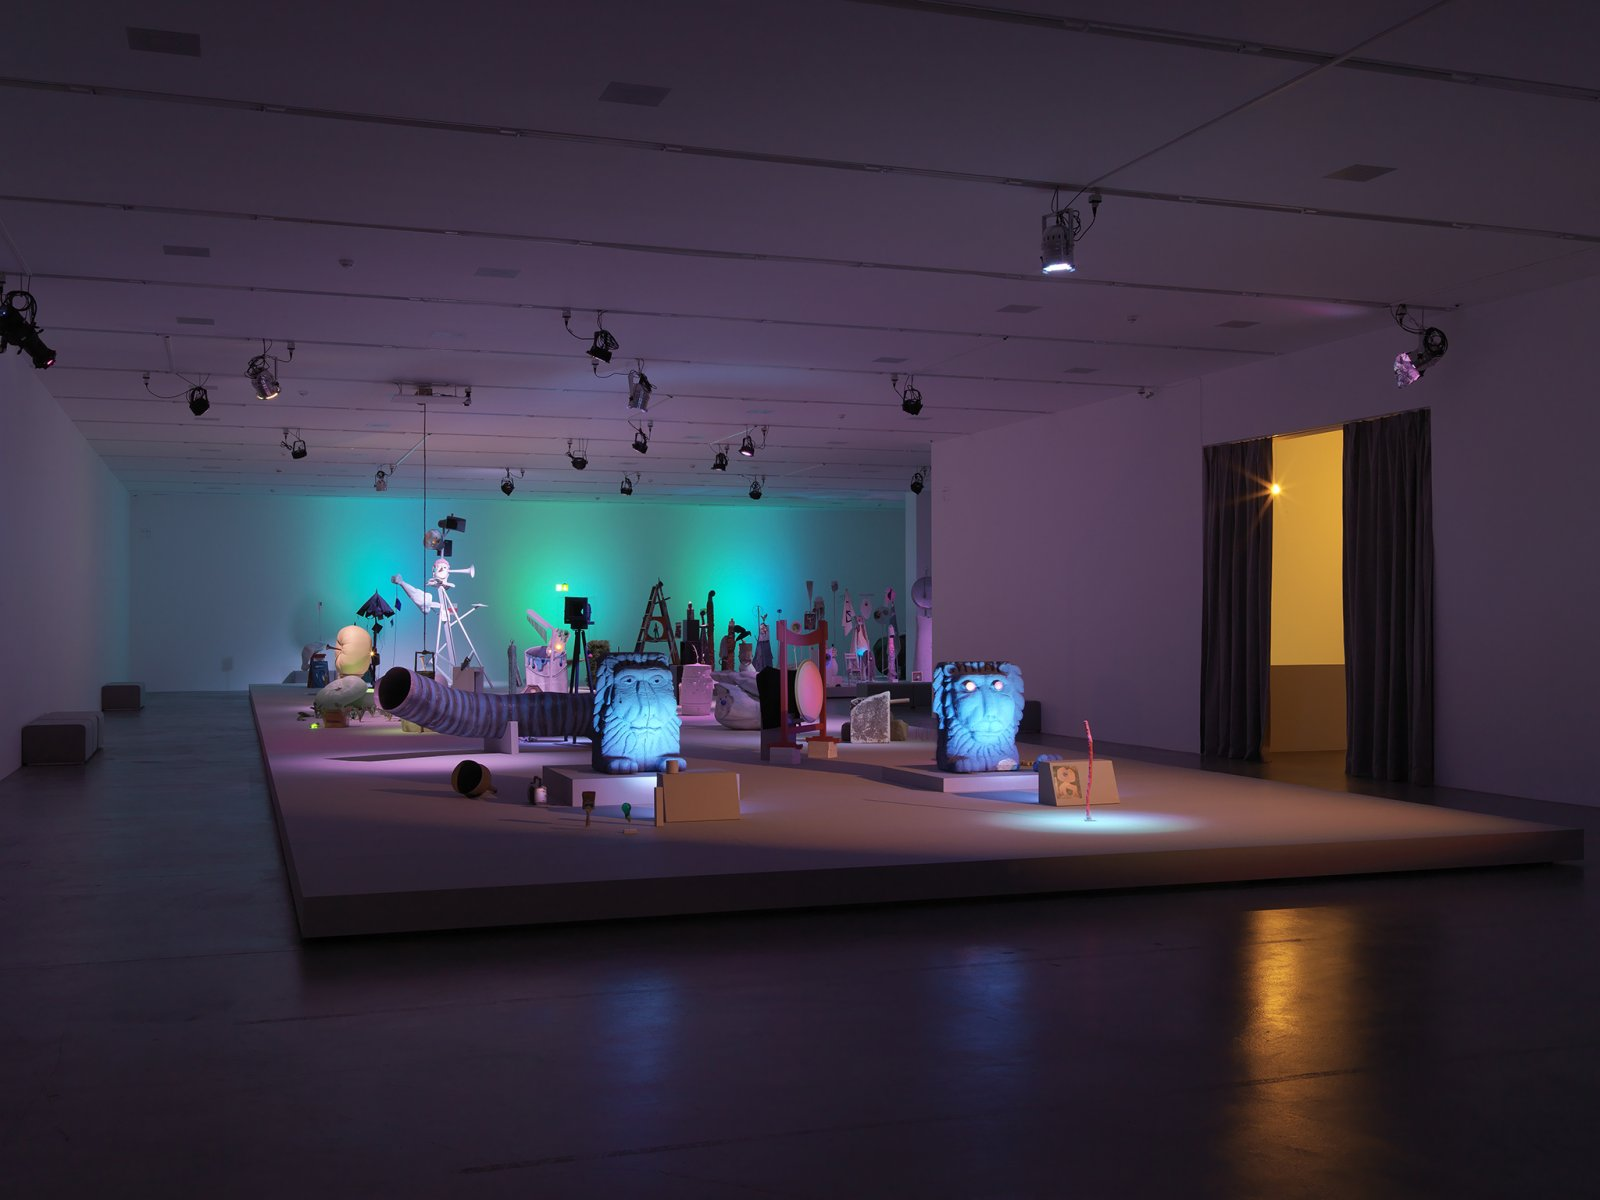 Geoffrey Farmer,Let's Make The Water Turn Black, 2011, a theatrical presentation of sculptural objects on a stage, with animatronics, audio and lighting directed by various computer programs, 289 x 360 x 90 in. (734 x 914 x 229 cm).Installation view,Migros Museum für Gegenwartskunst,Zürich, 2013